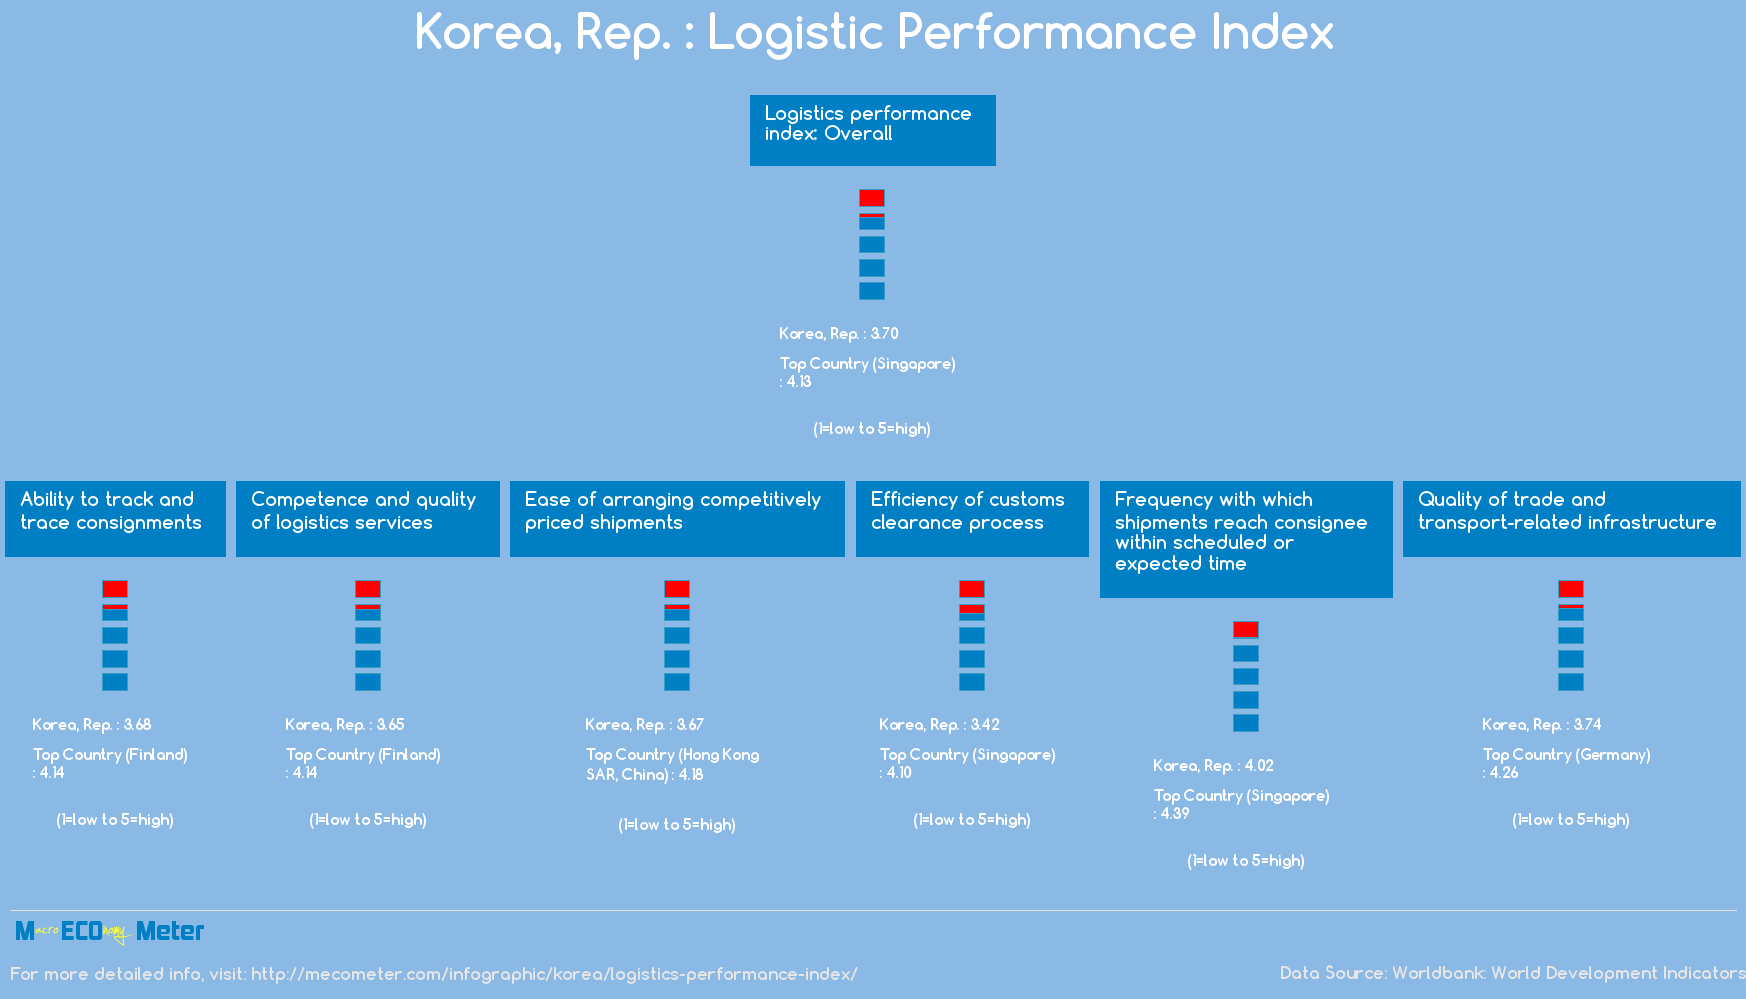 Korea, Rep. : Logistic Performance Index